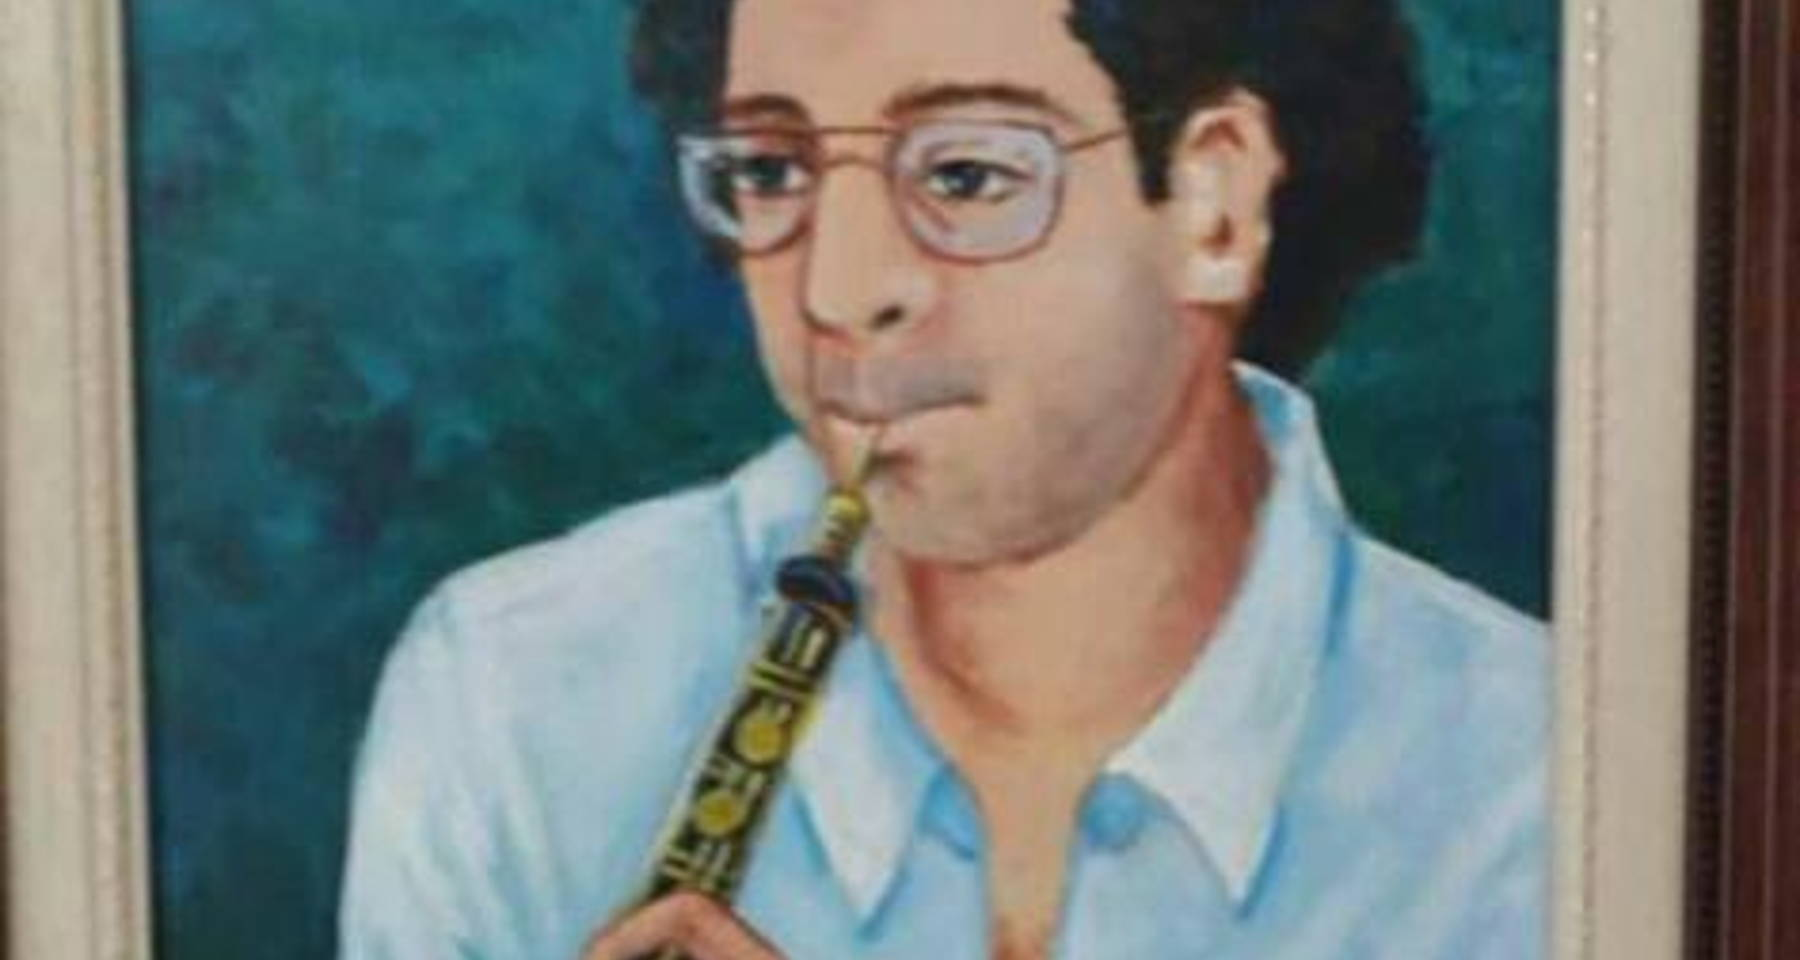 An oboe and piano recital from gershwin, ravel to michel legrand